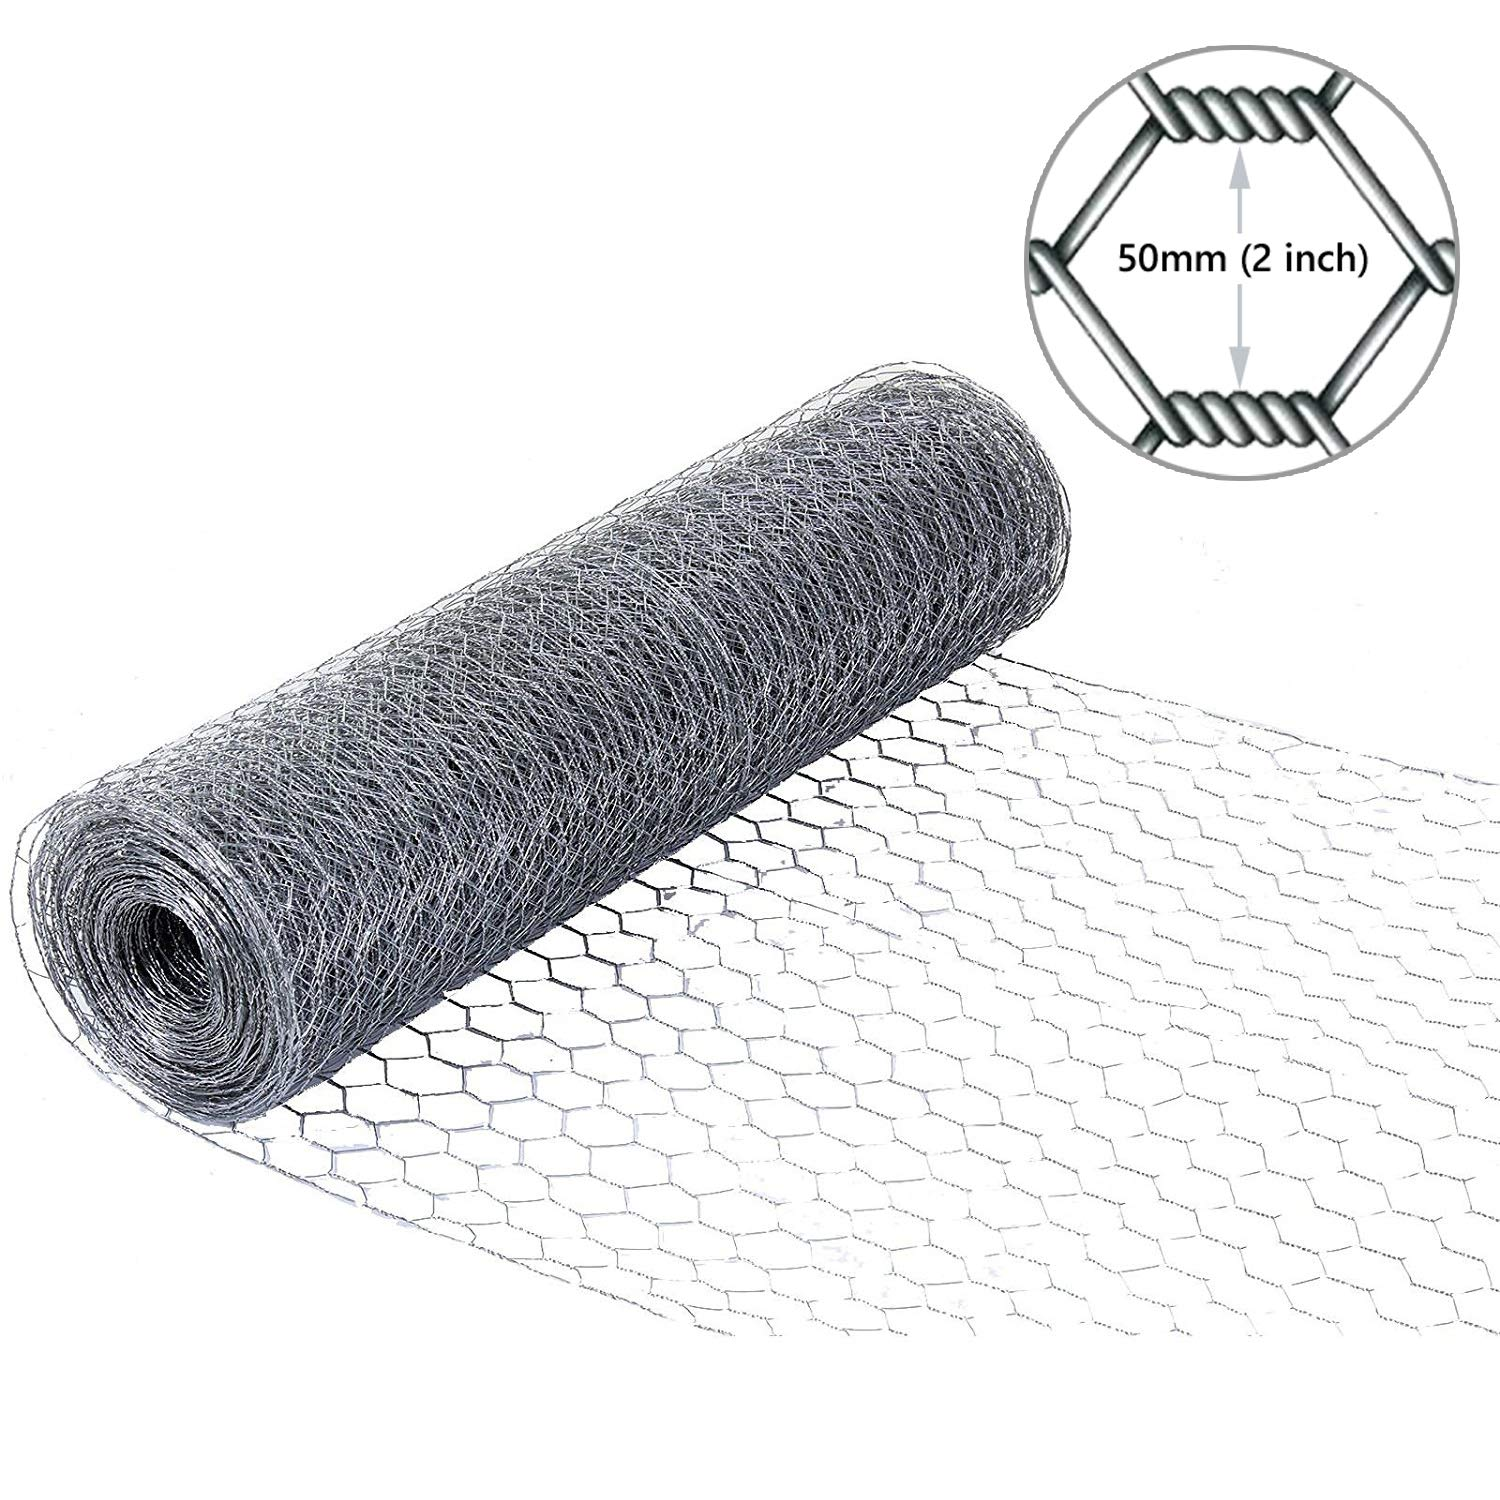 Simpa Galvanised Steel 50M x 0.6M (164FT x 2FT) Chicken Wire Poultry & Livestock Fencing - 2